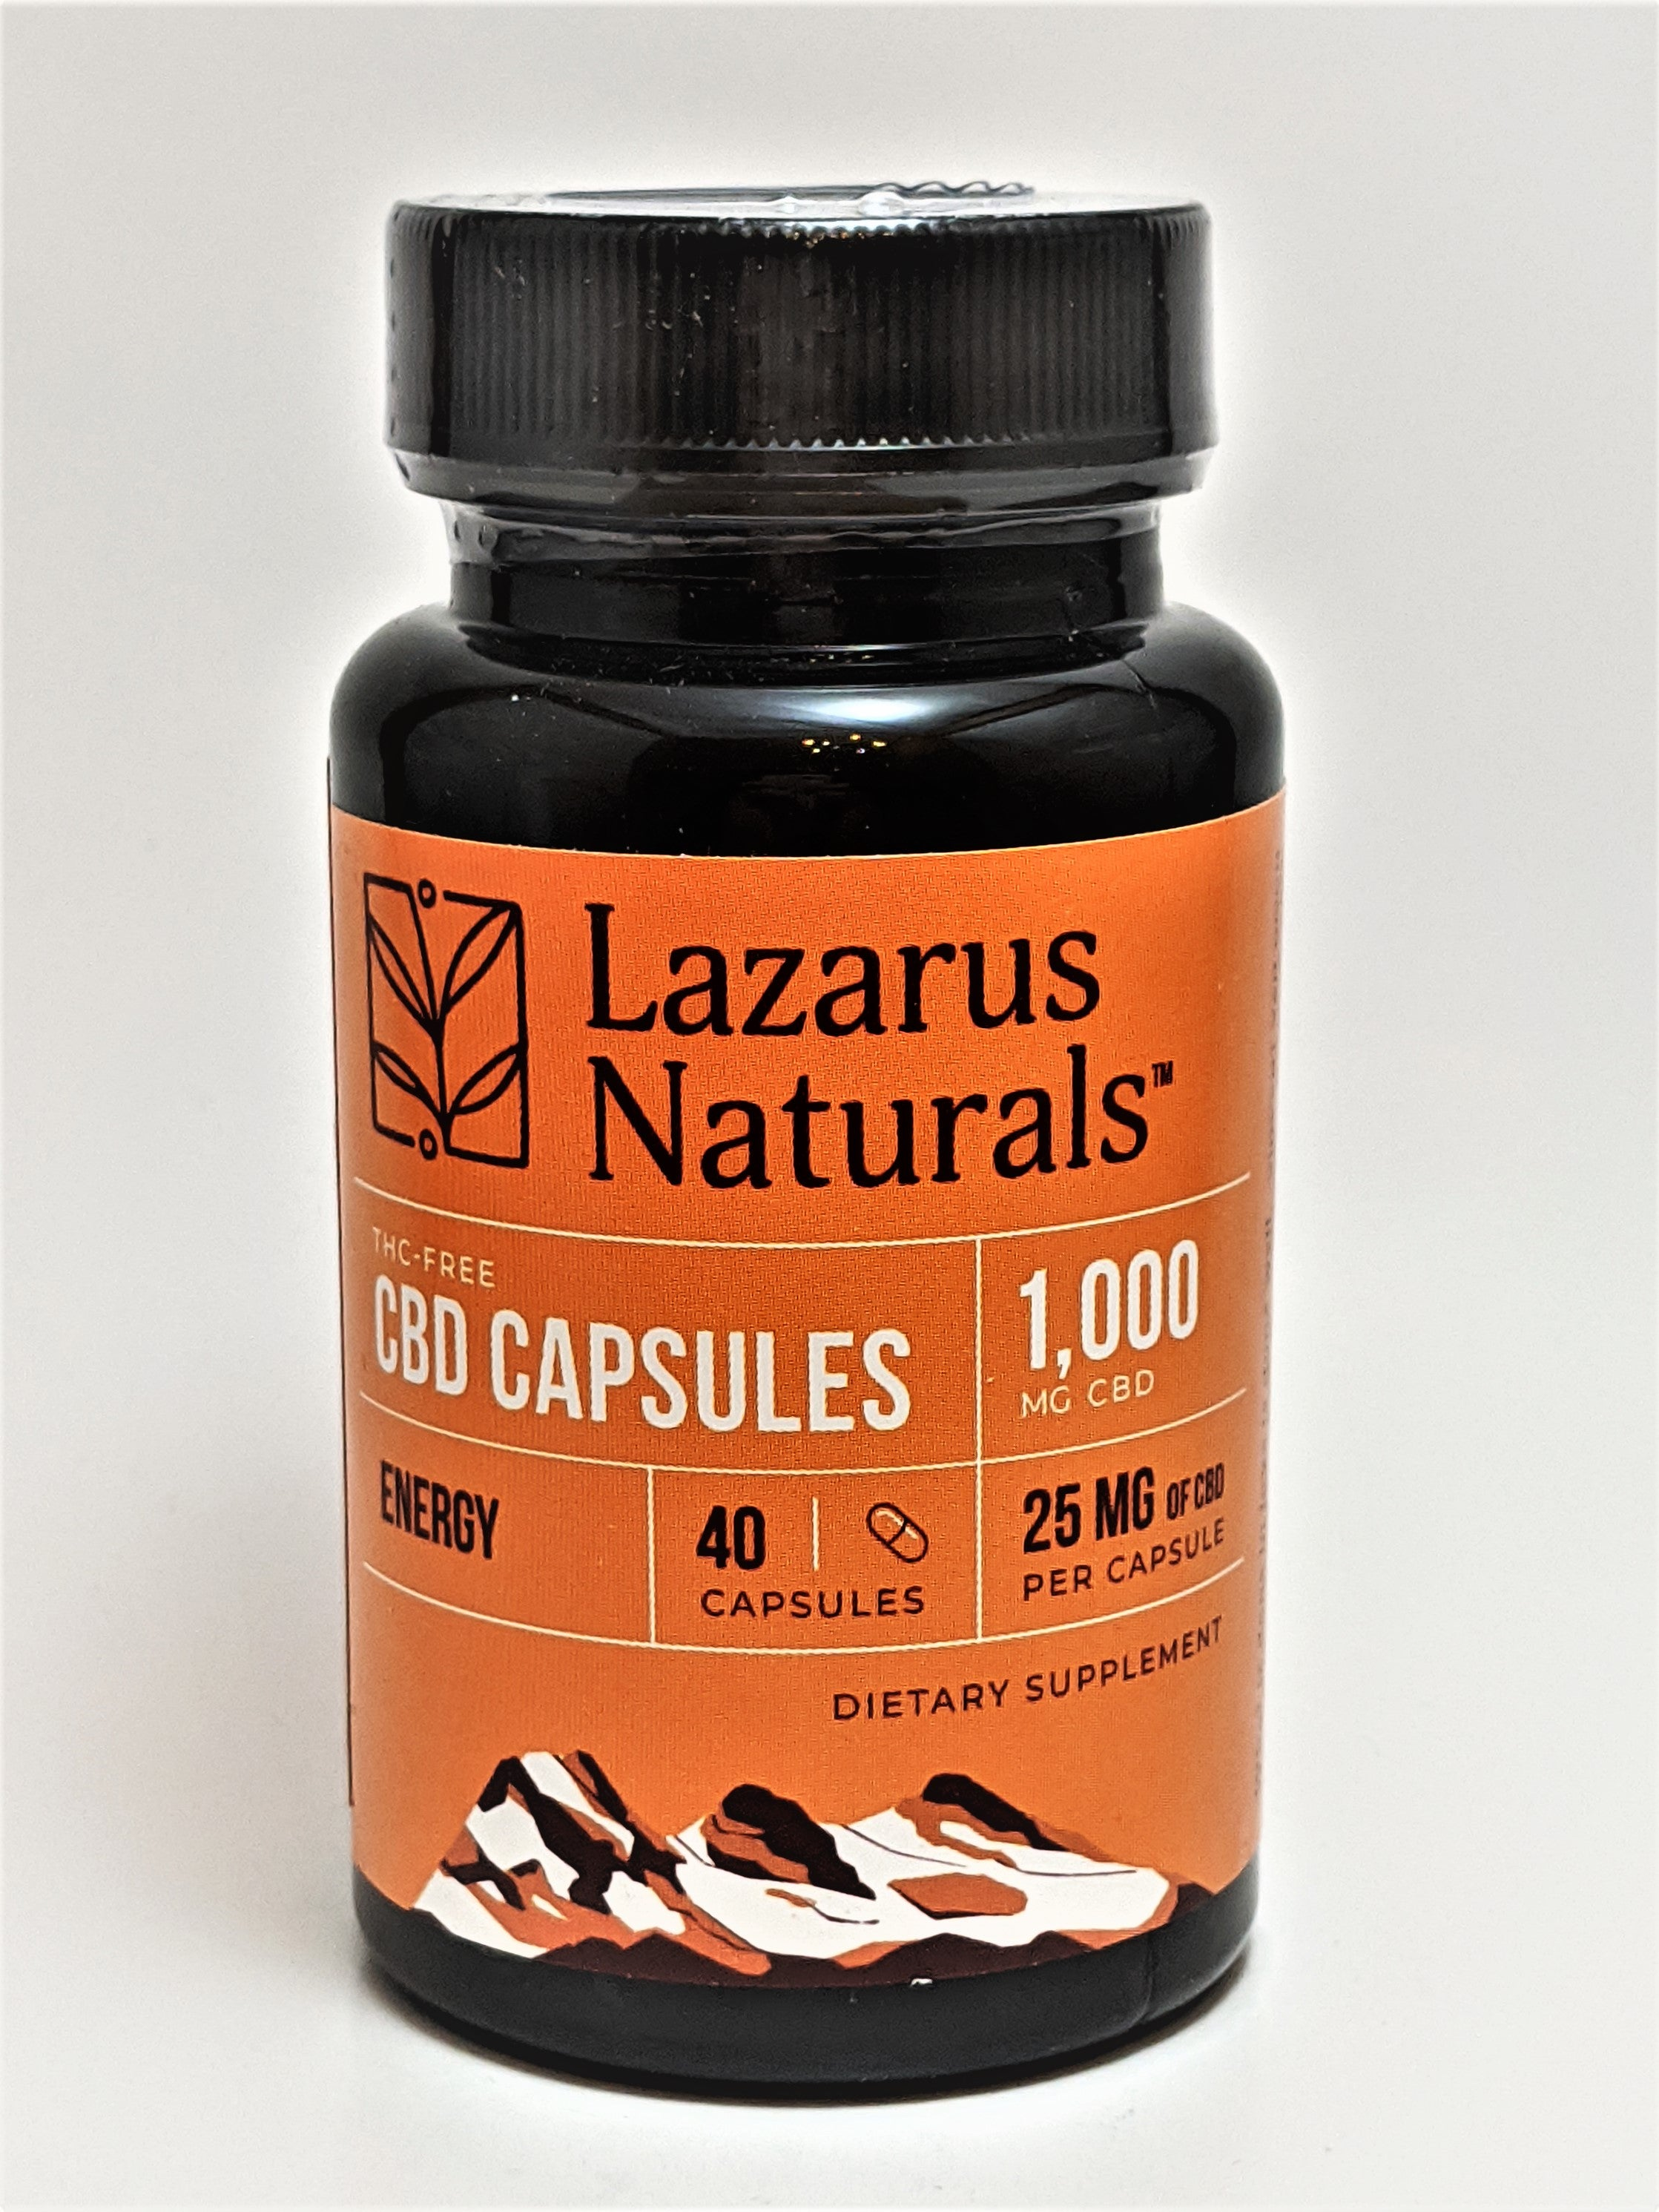 Lazarus Energy Blend 25mg CBD Isolate Capsules, 40 Count Bottle (1,000 mg CBD) - CBD Central